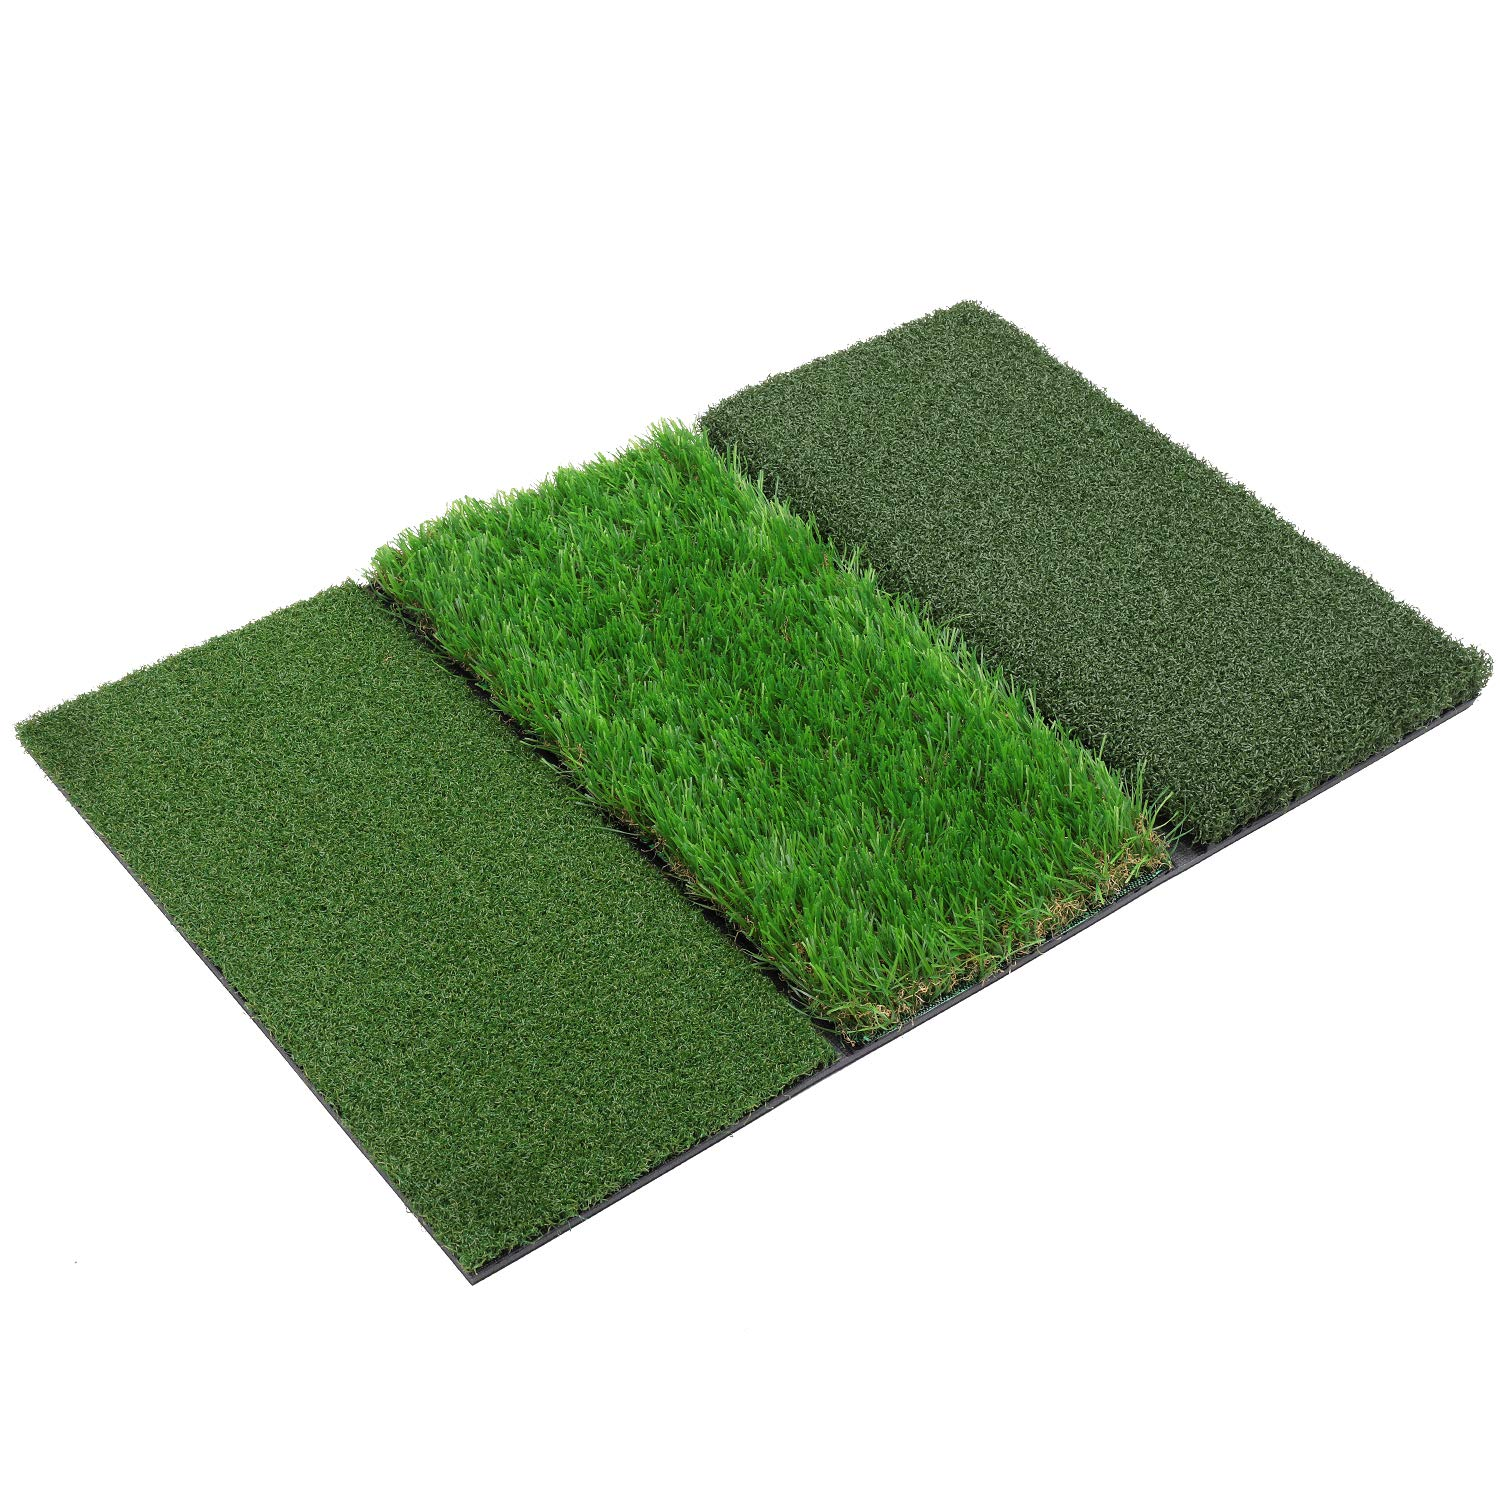 SkyLife Tri-Turf Dual-Turf Golf Hitting Mat, Driving Chipping Putting Training Aids for Backyard Home Garage Outdoor Practice with TEEs